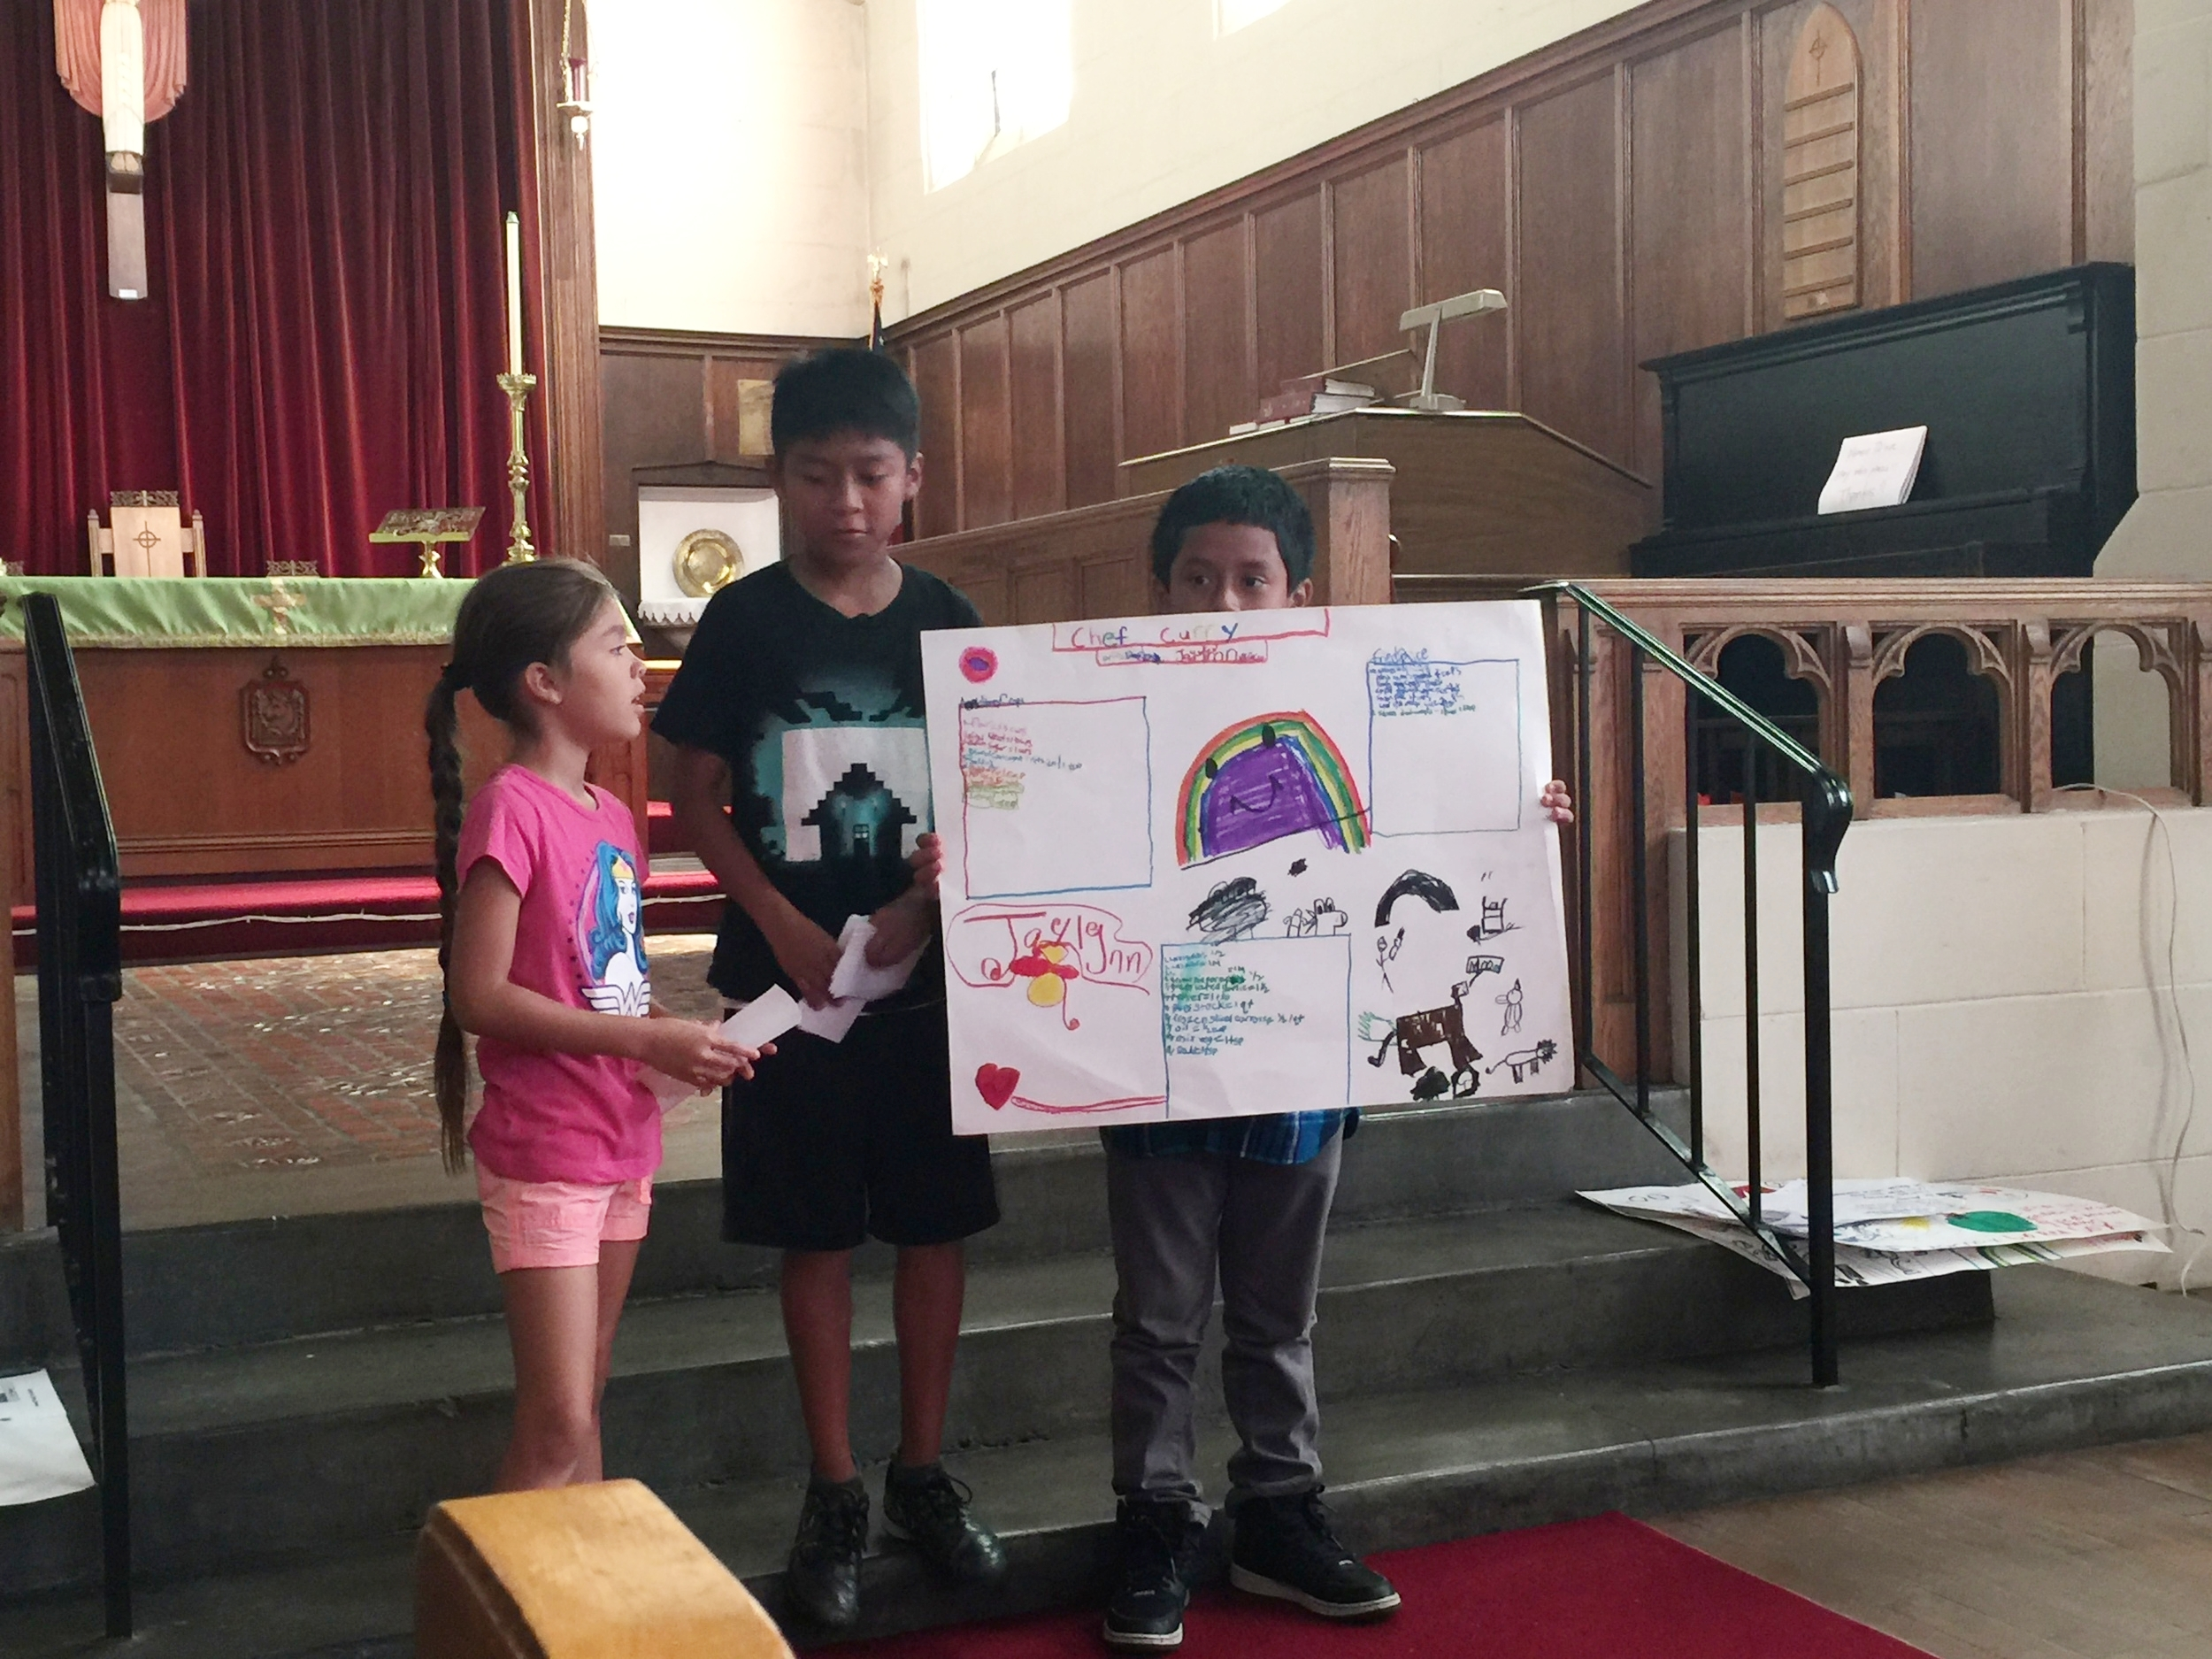 Kids use math to present what a great future looks like for them.